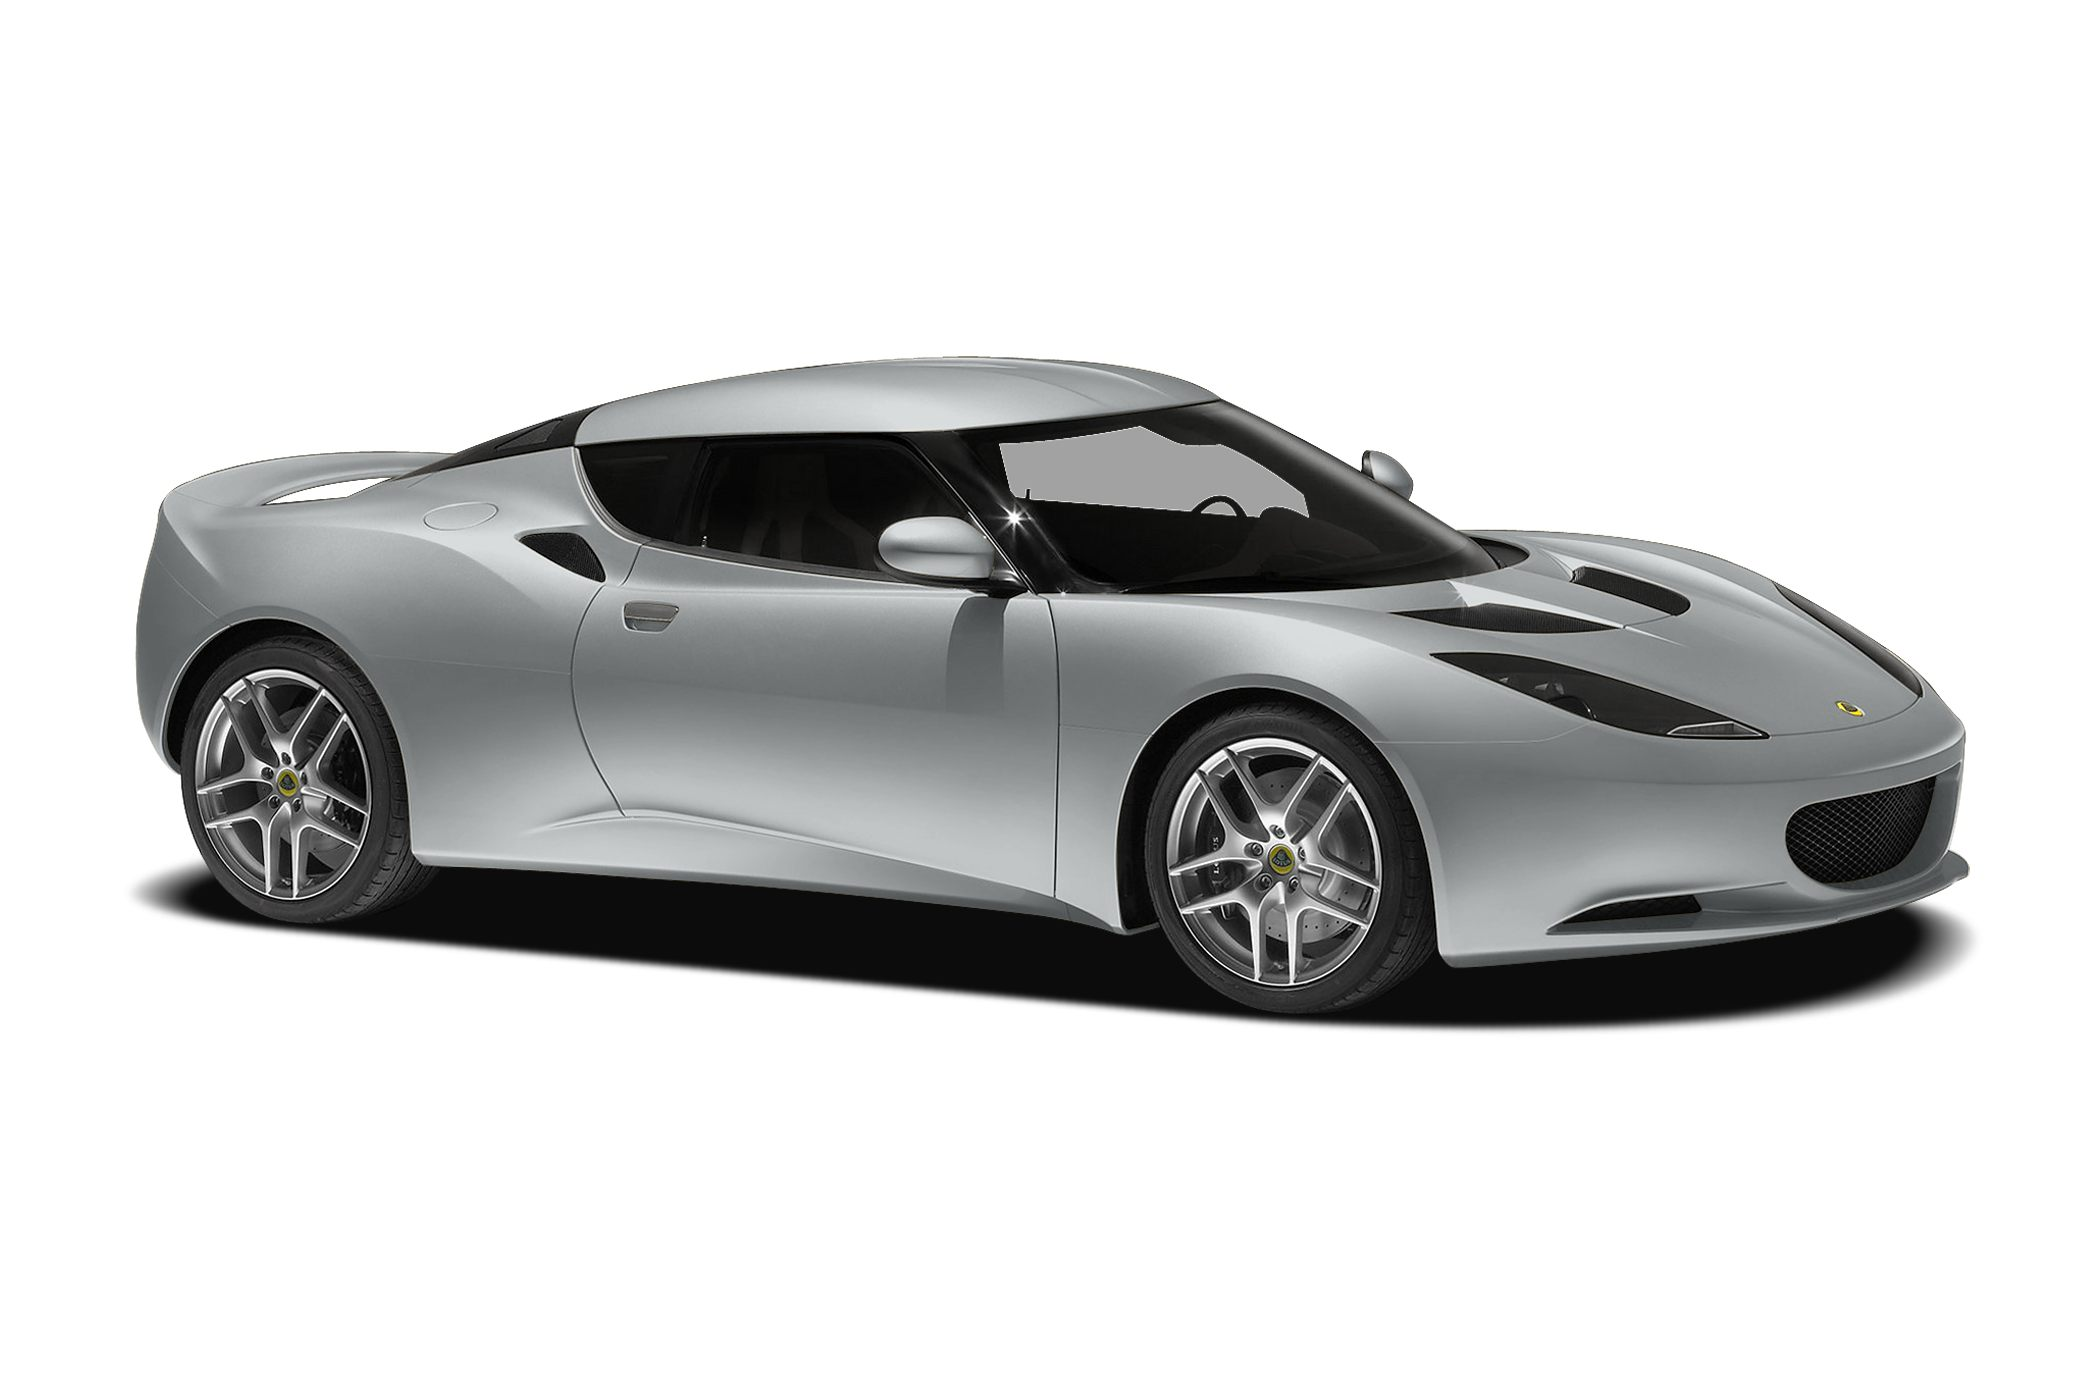 2010 Lotus Evora